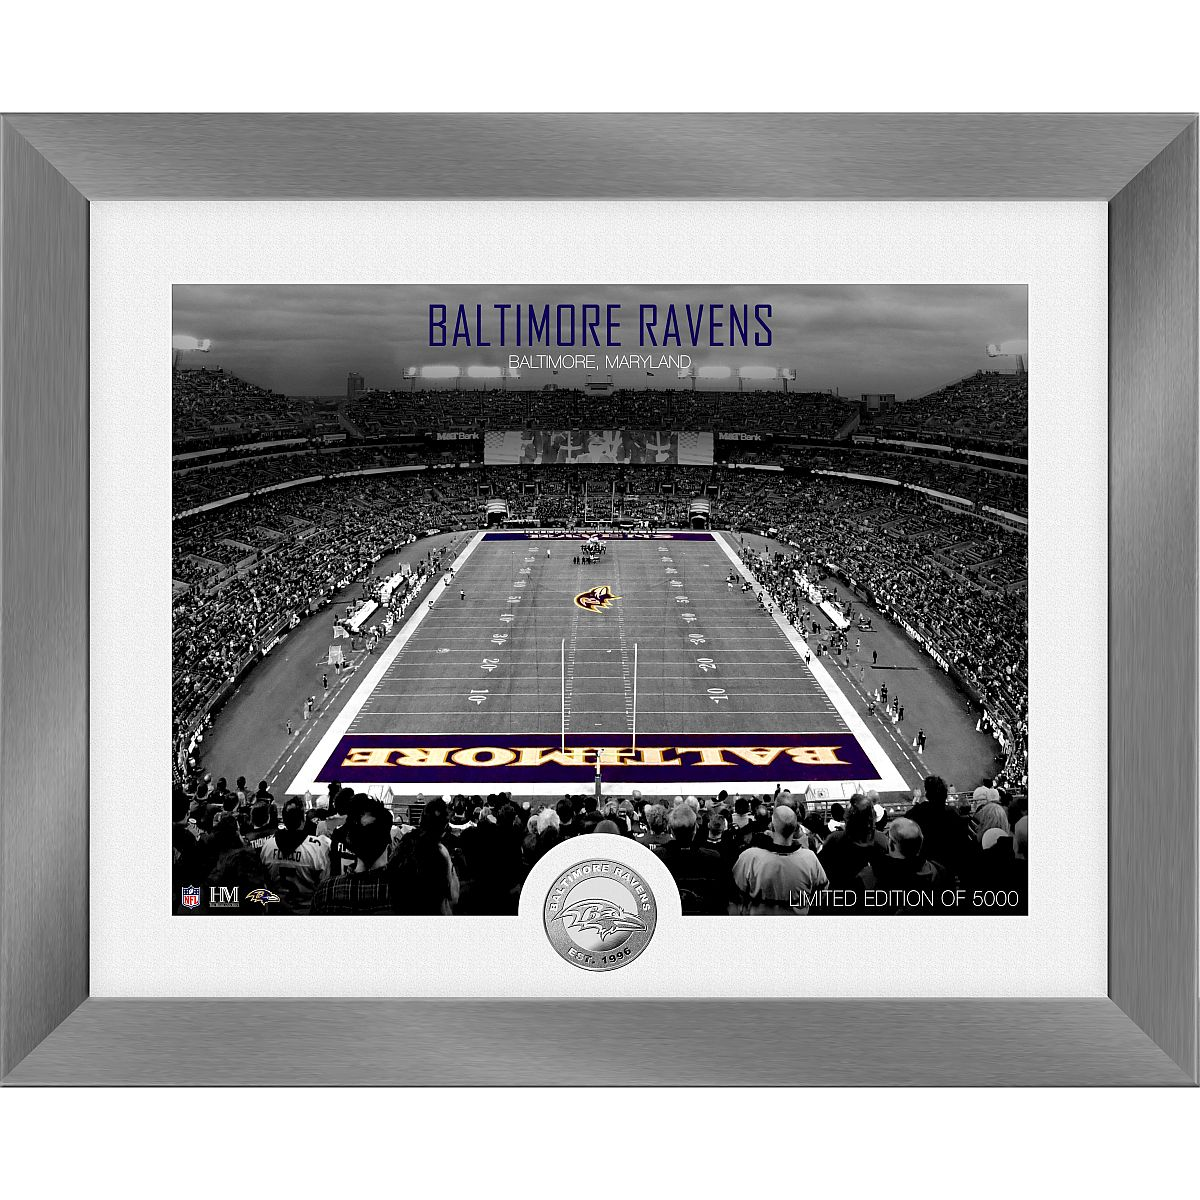 Baltimore Ravens Art Deco Stadium Silver Coin Photo Mint